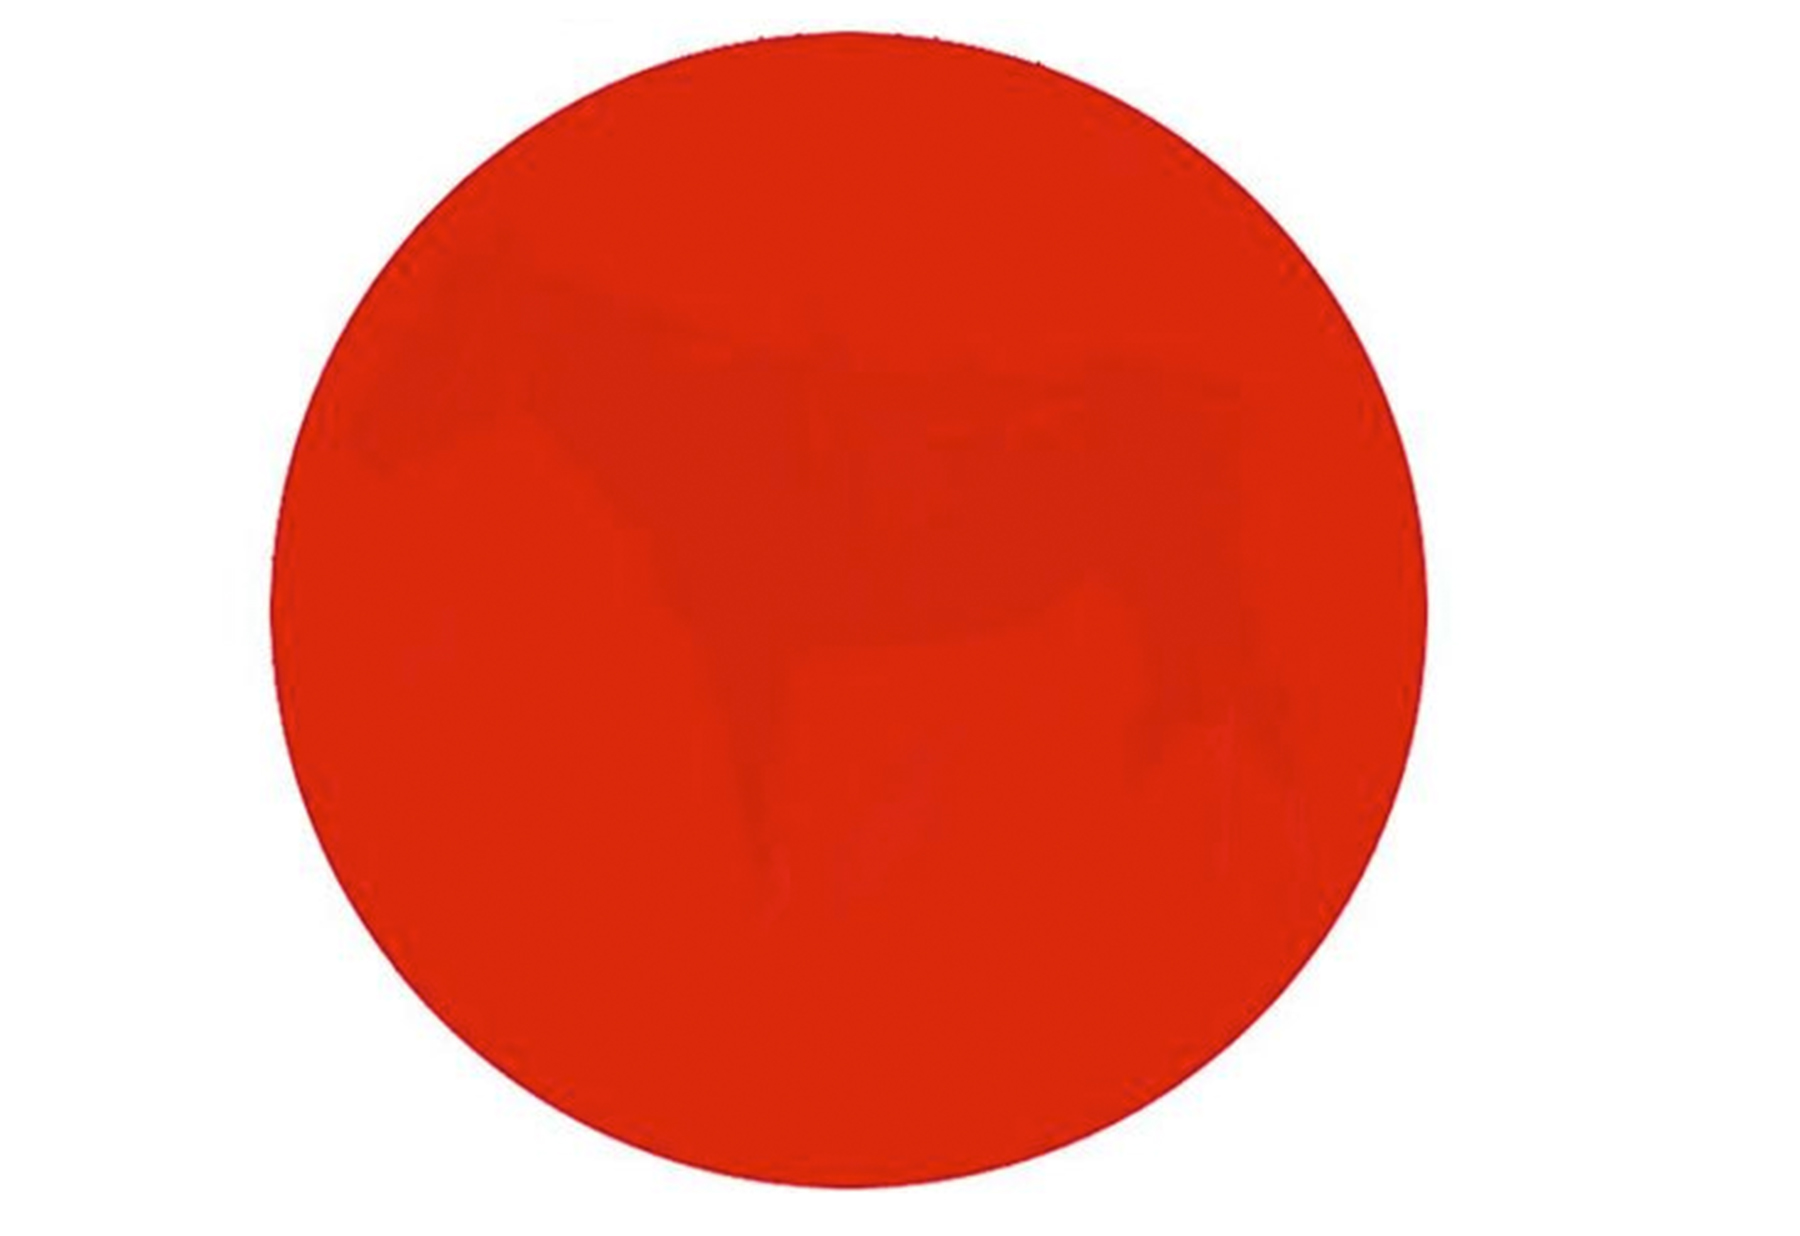 Can you see the hidden image inside this mysterious red dot?